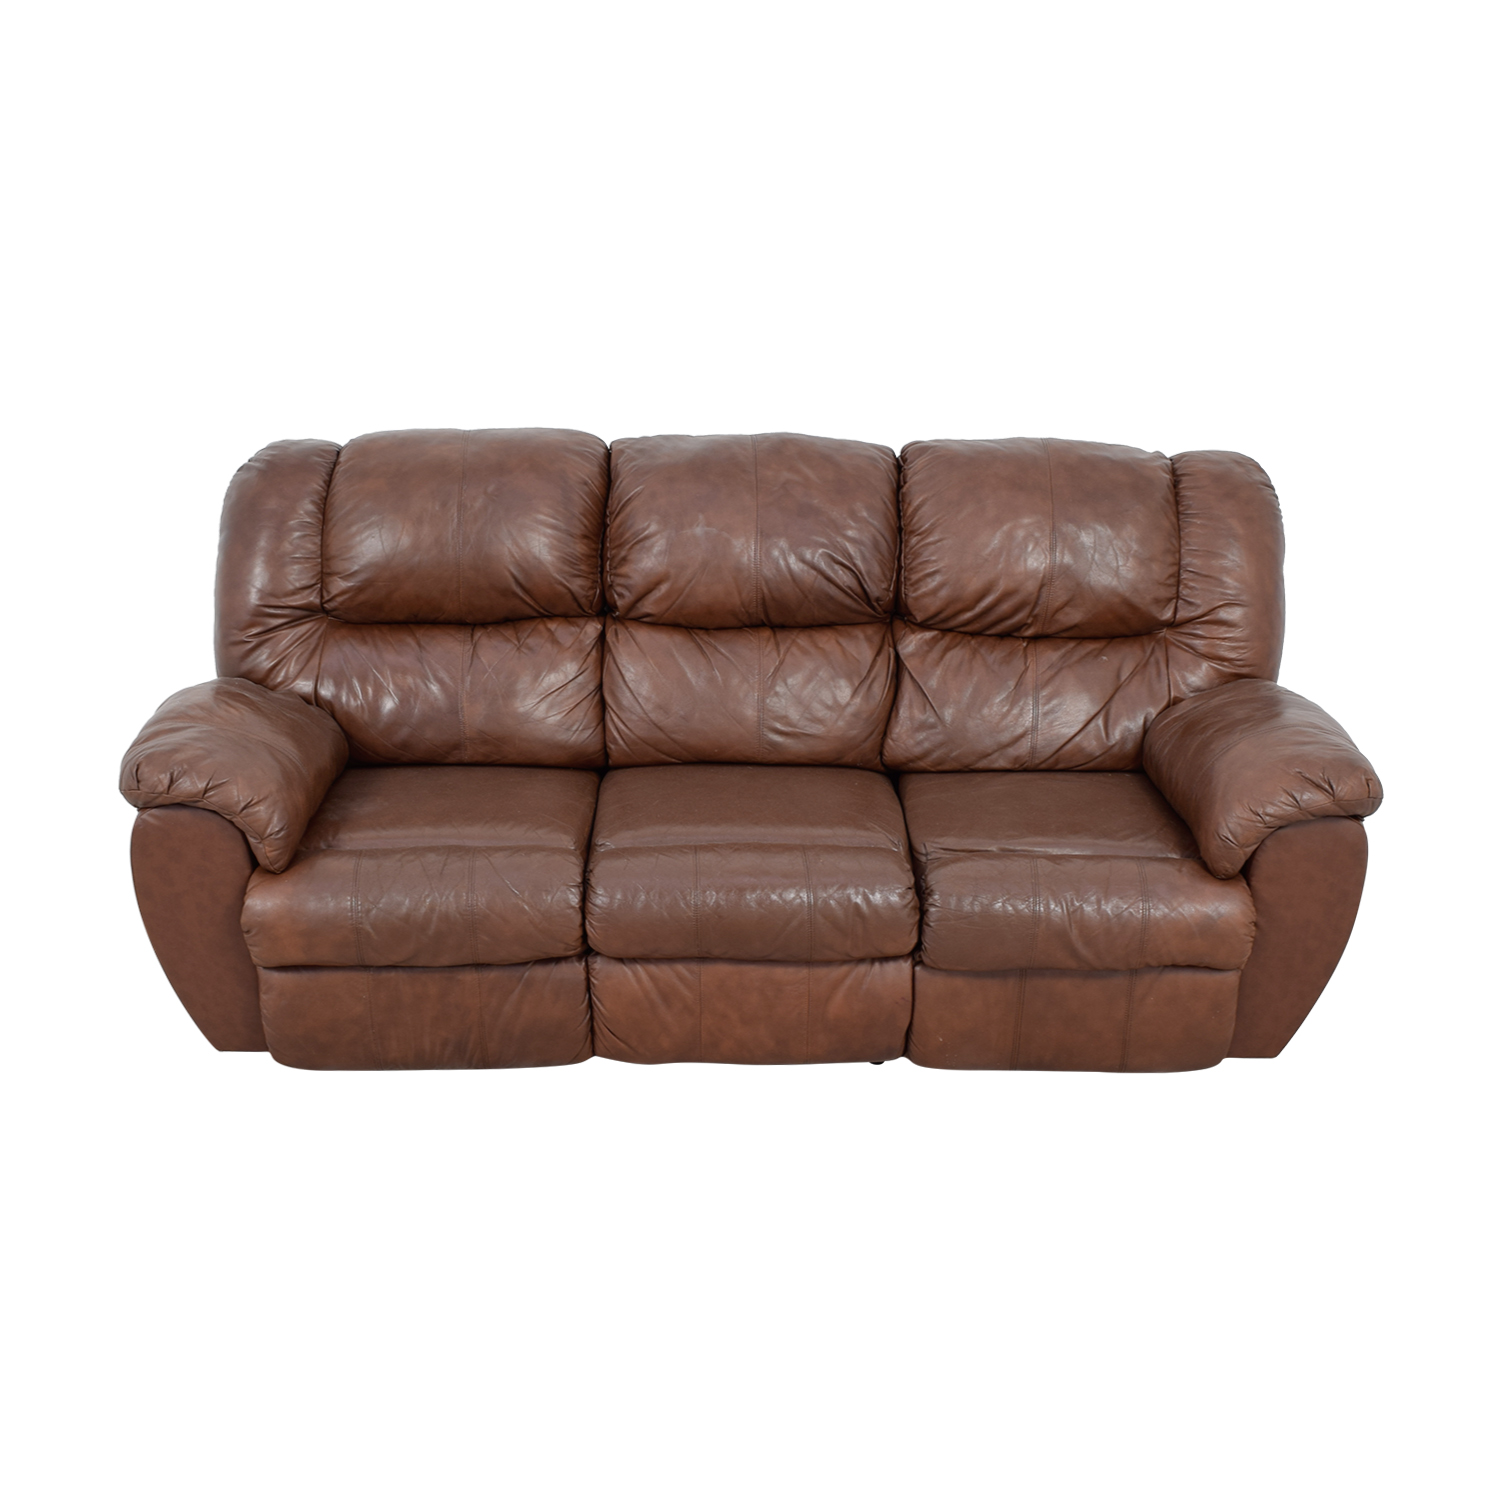 ... Ashley Furniture Ashley Furniture Dual Reclining Brown Leather Couch  Price ...